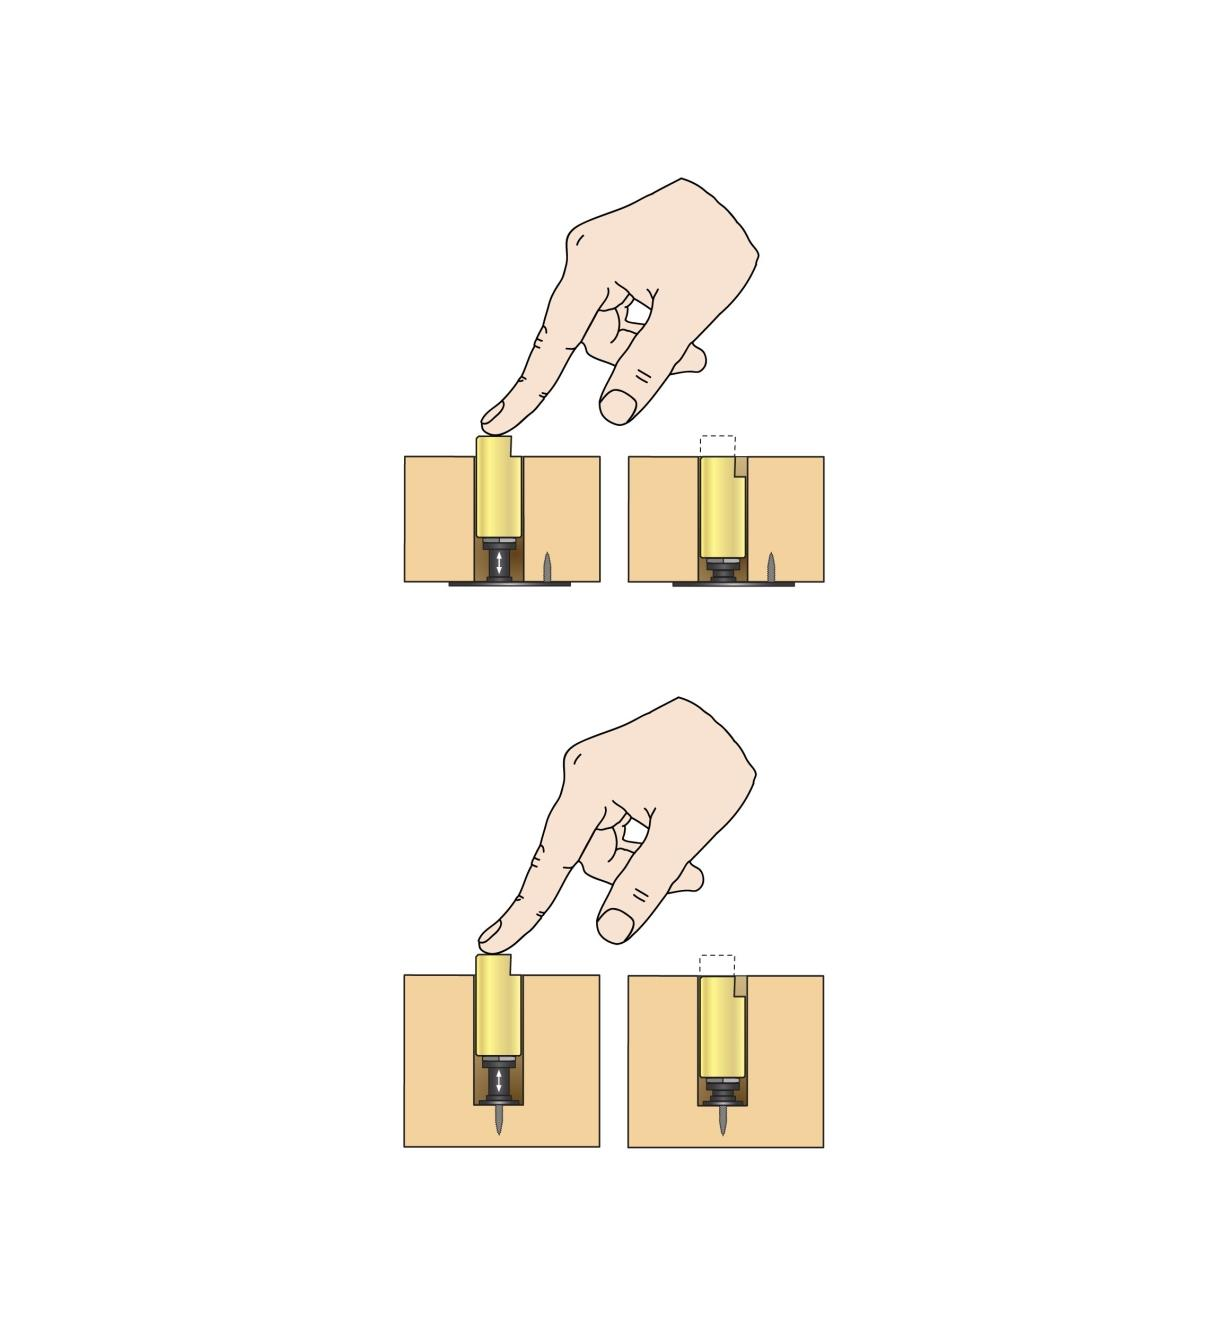 Diagram showing the Prairie Dog, installed in a through-hole or a blind hole, being pushed with a finger to raise or recess it.